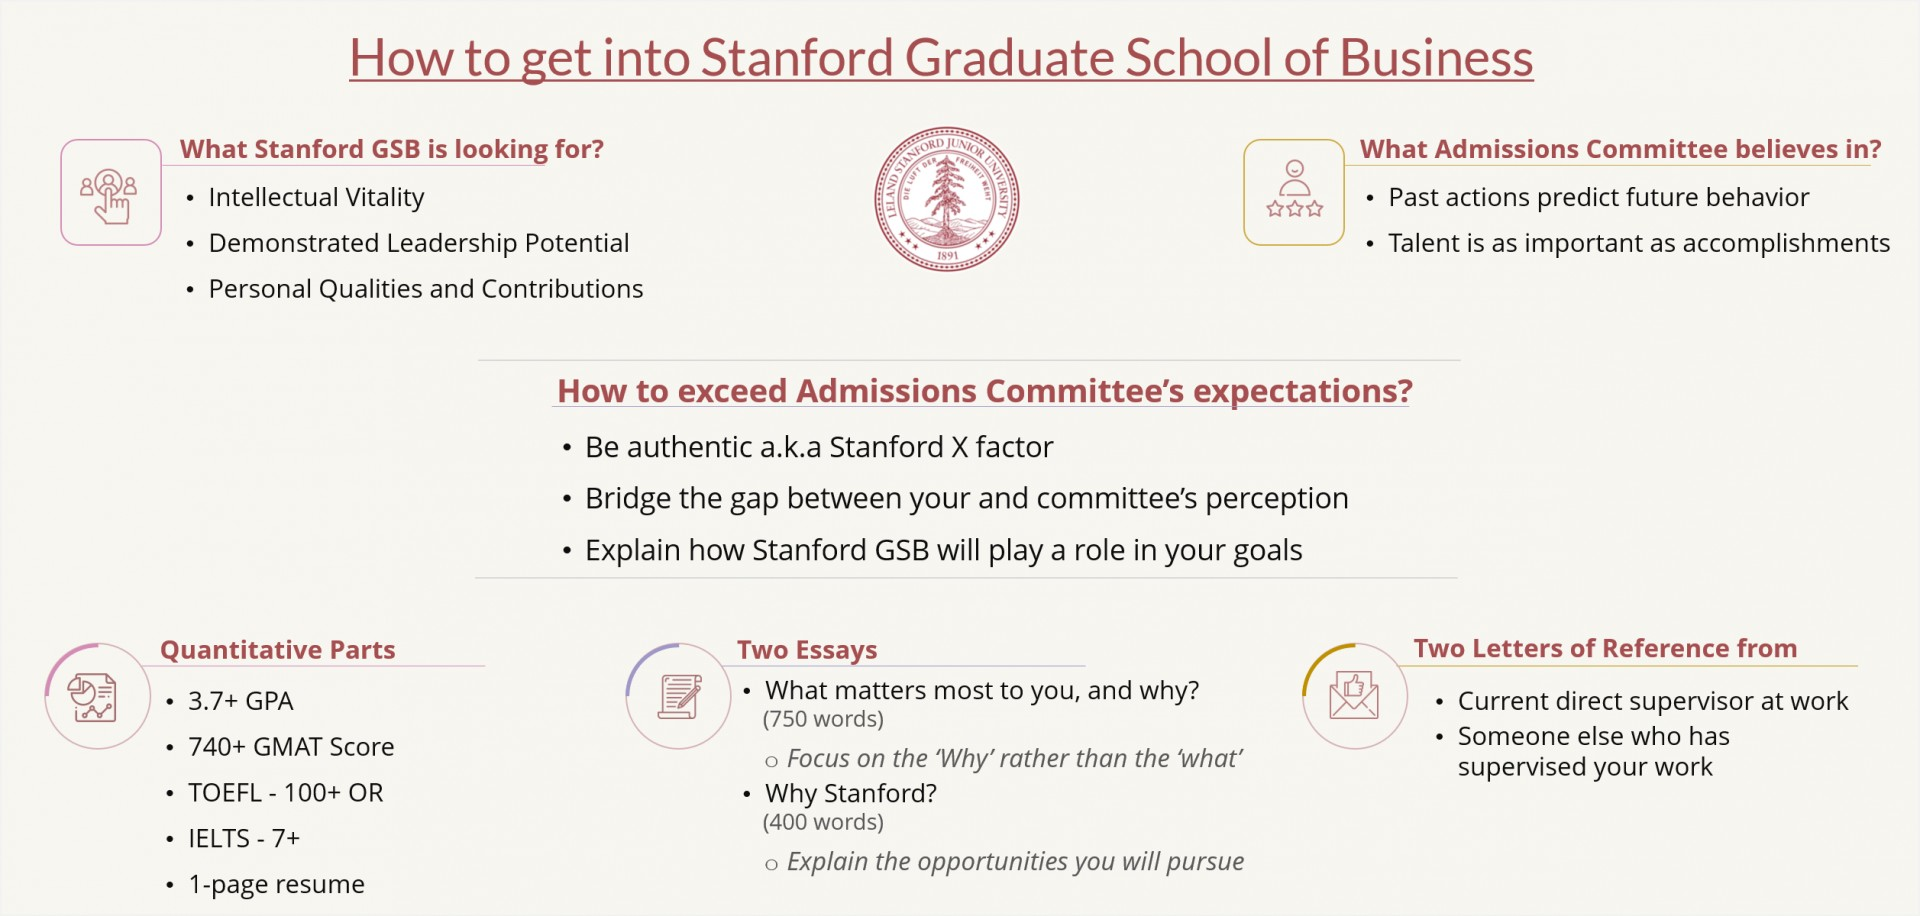 004 How To Get Into Stanford Gsb Mba Programfit25142c1200ssl1 Essay Phenomenal 2019 Analysis Tips 1920